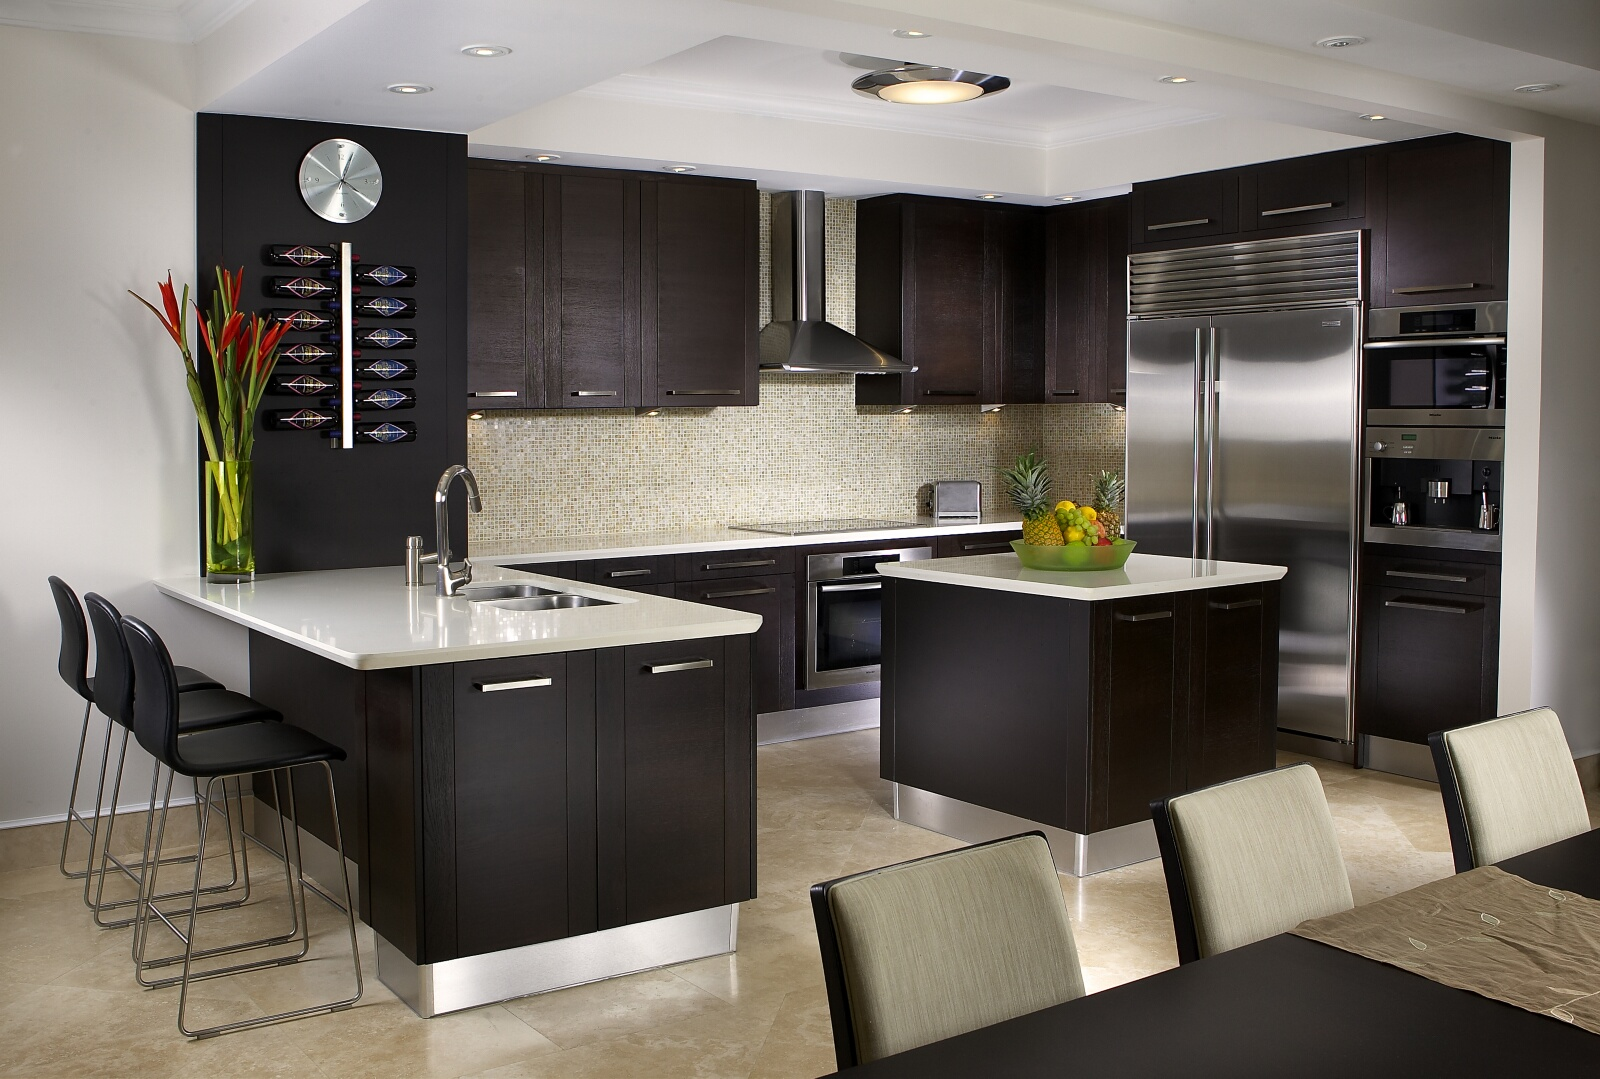 kitchen interior design kitchen interior design services miami florida 9206